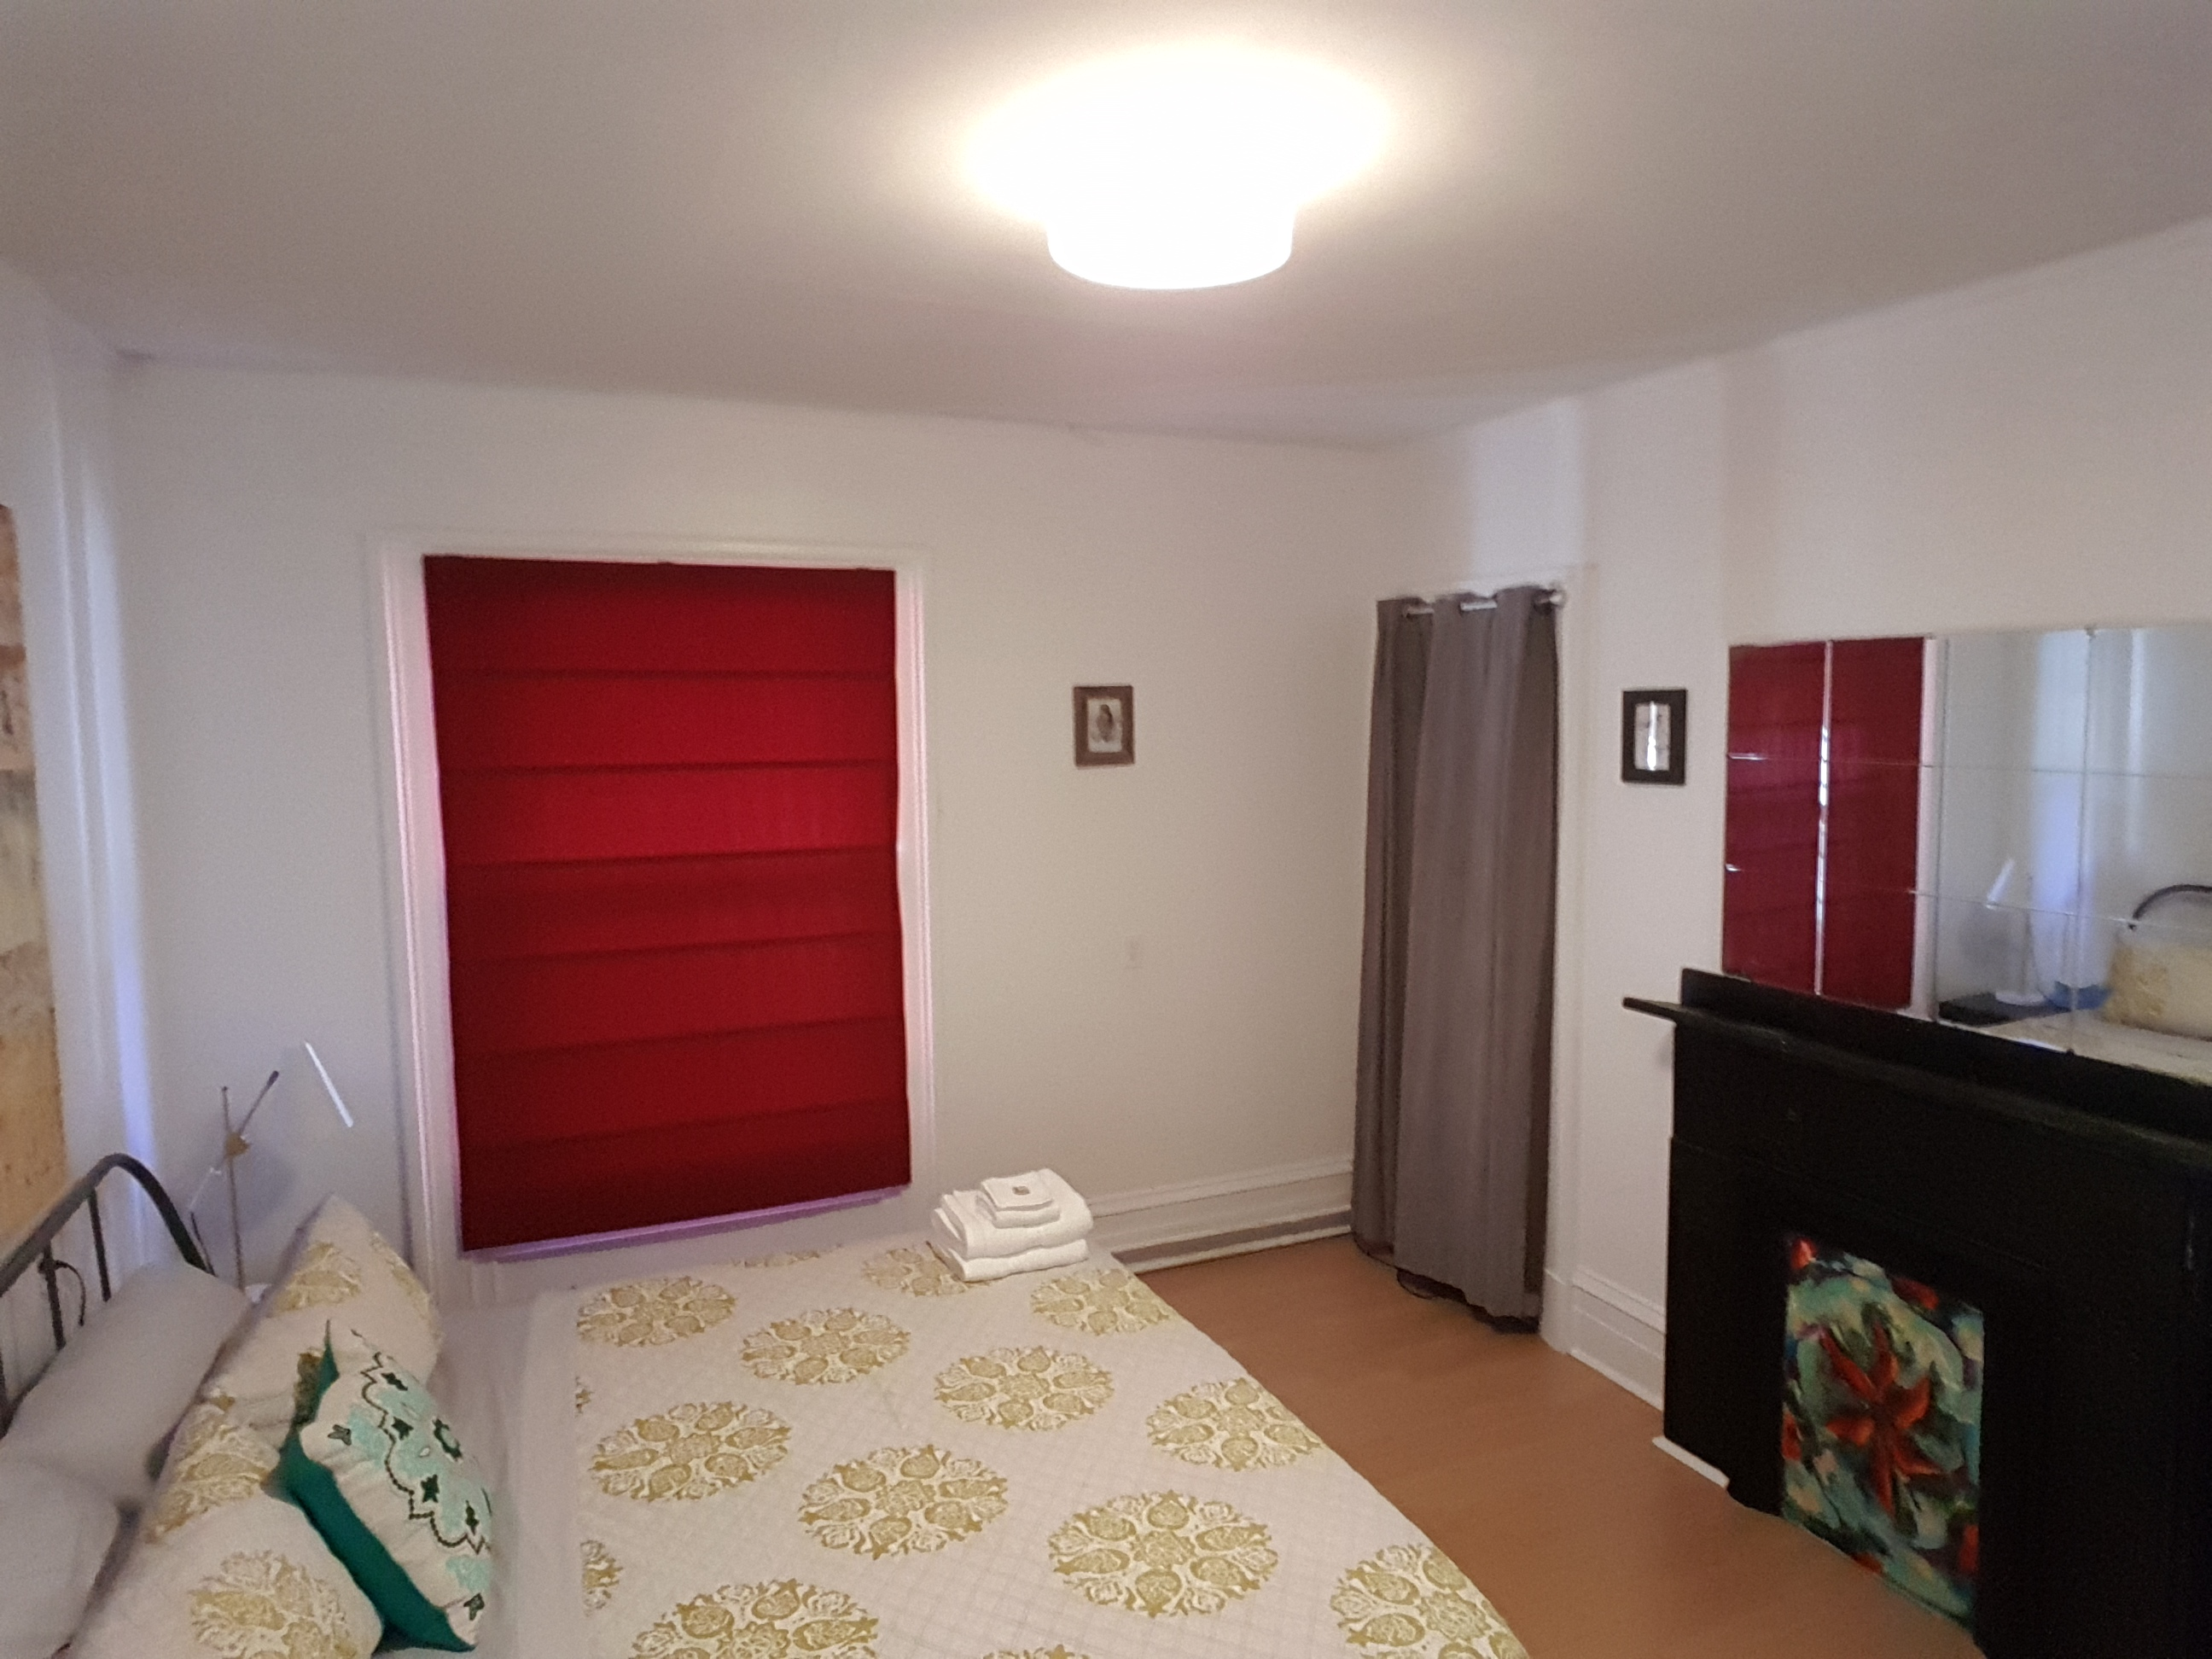 1275 South Park , Halifax One Bedroom Unit 4 Available September 1st